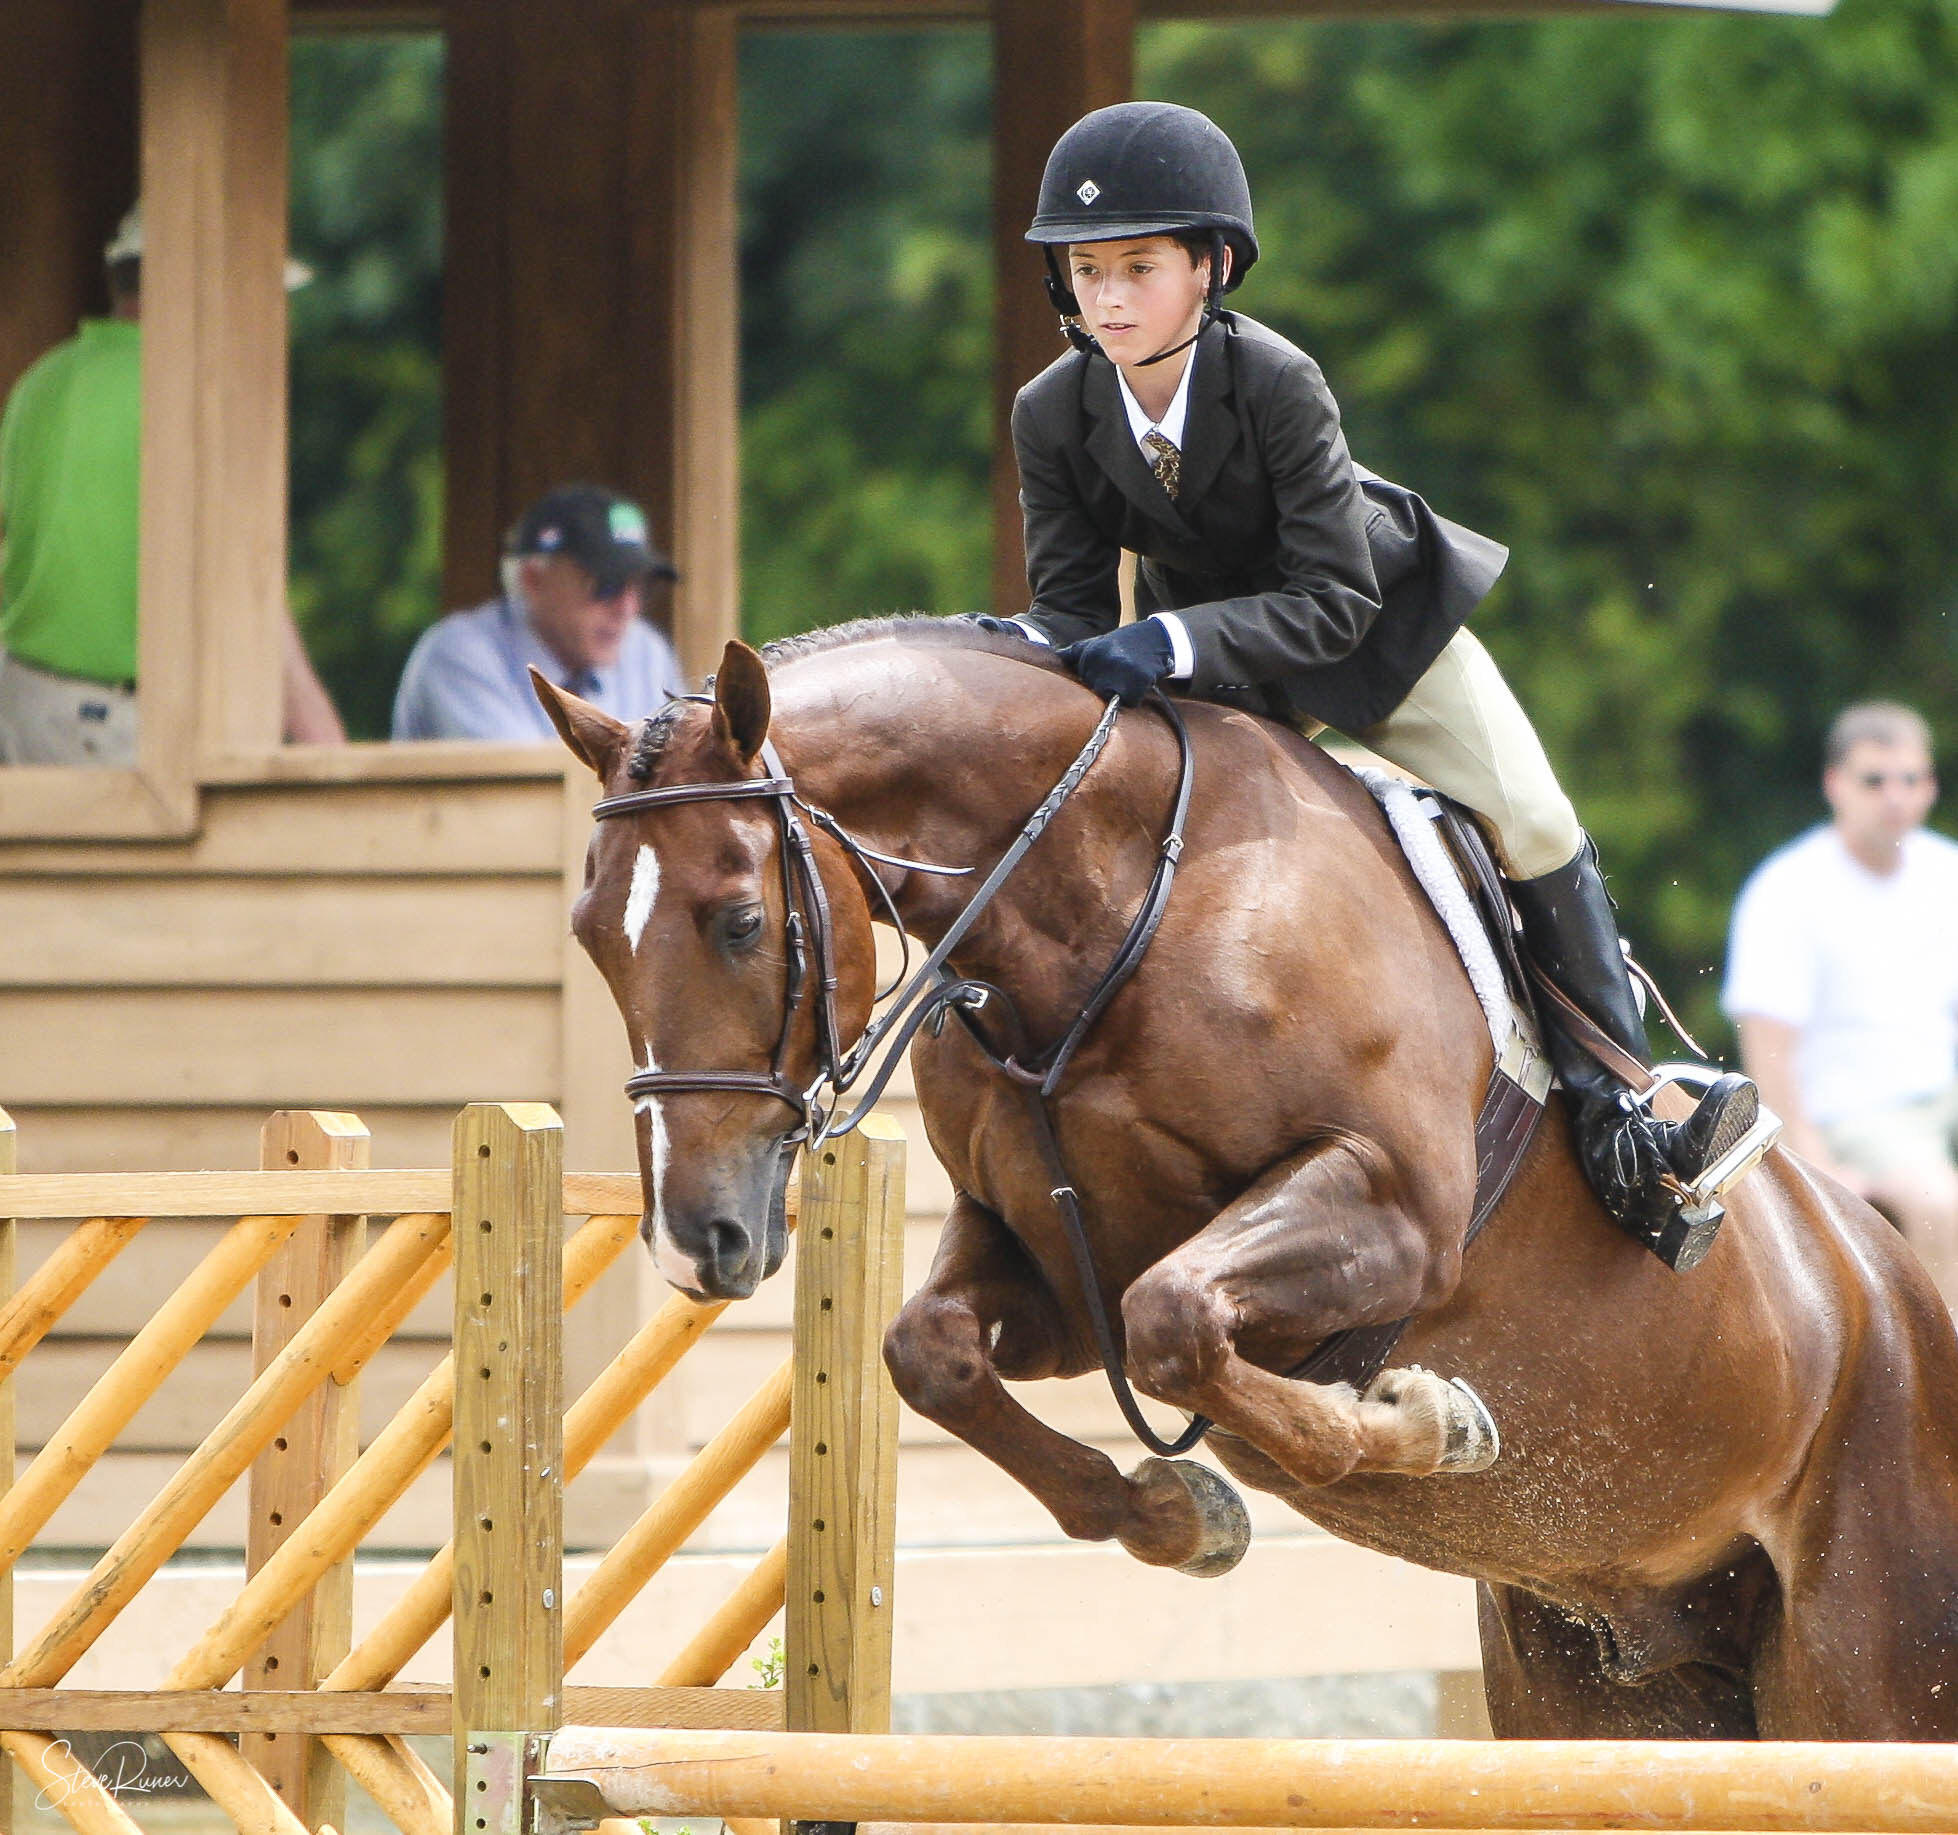 gtown_horseshow_14jun08_292